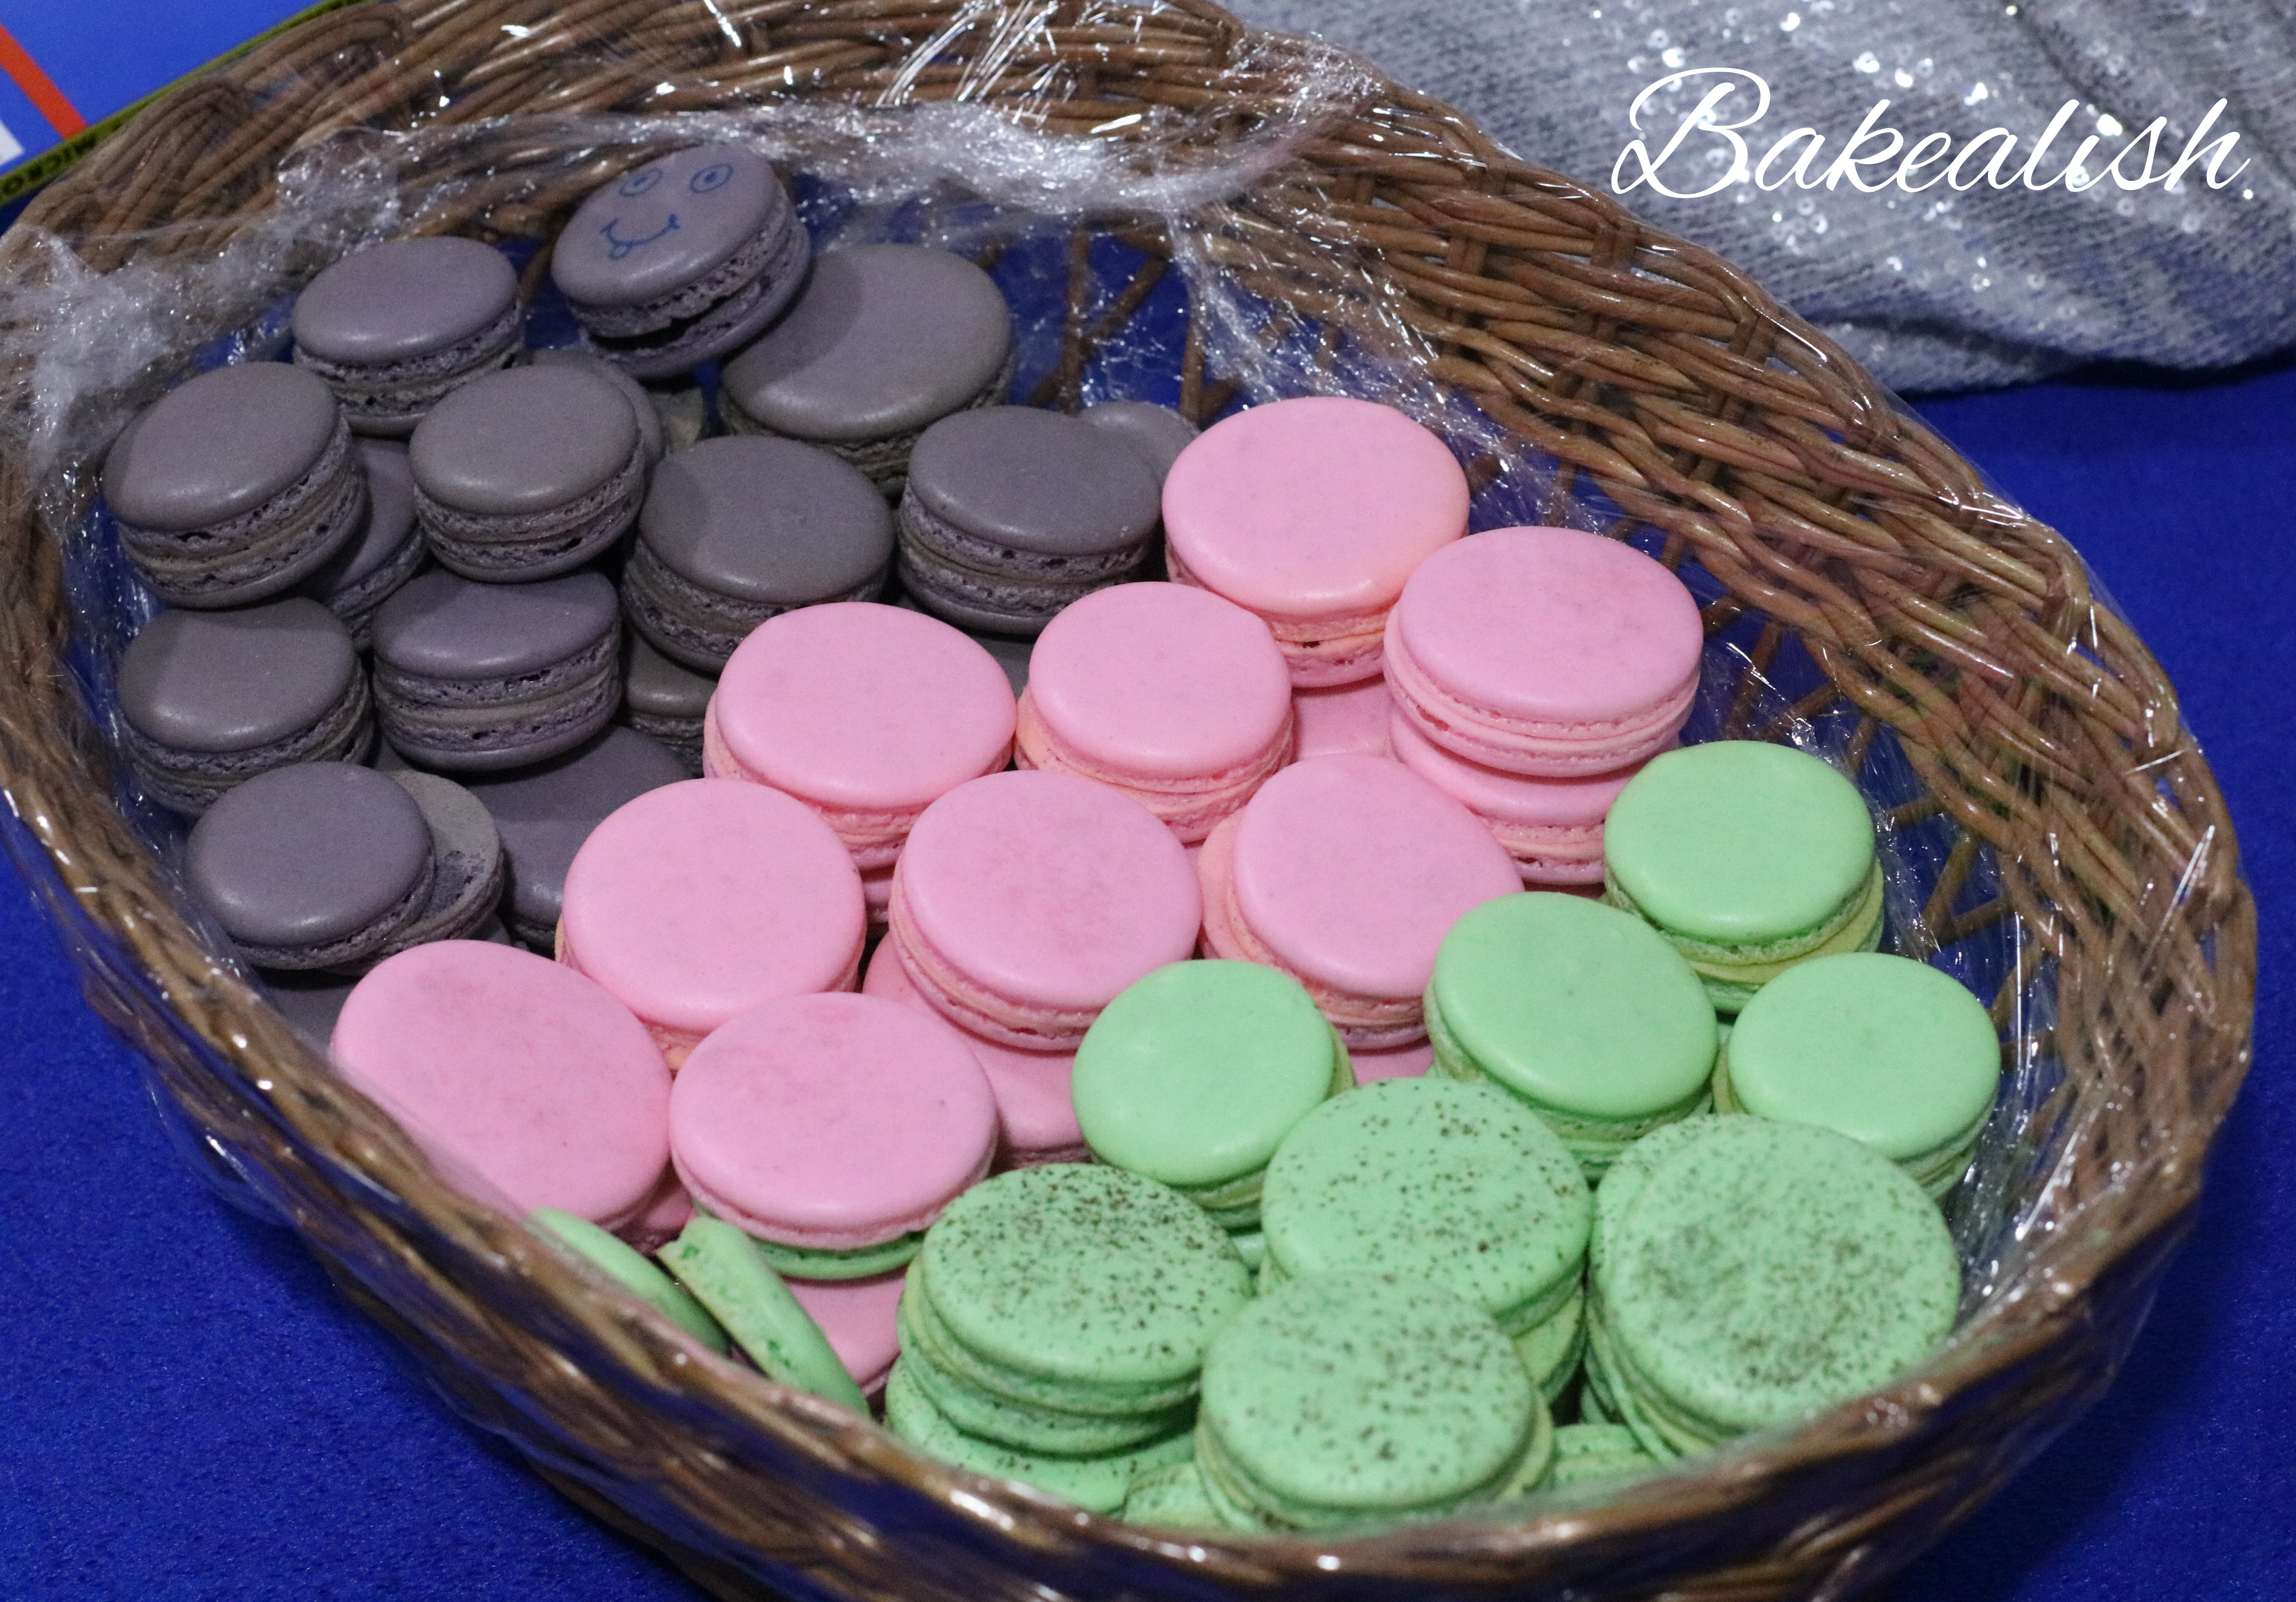 These classic French Macarons are one of the trickiest cookies to make. Join us at my workshop that is completely dedicated to making these beauties.